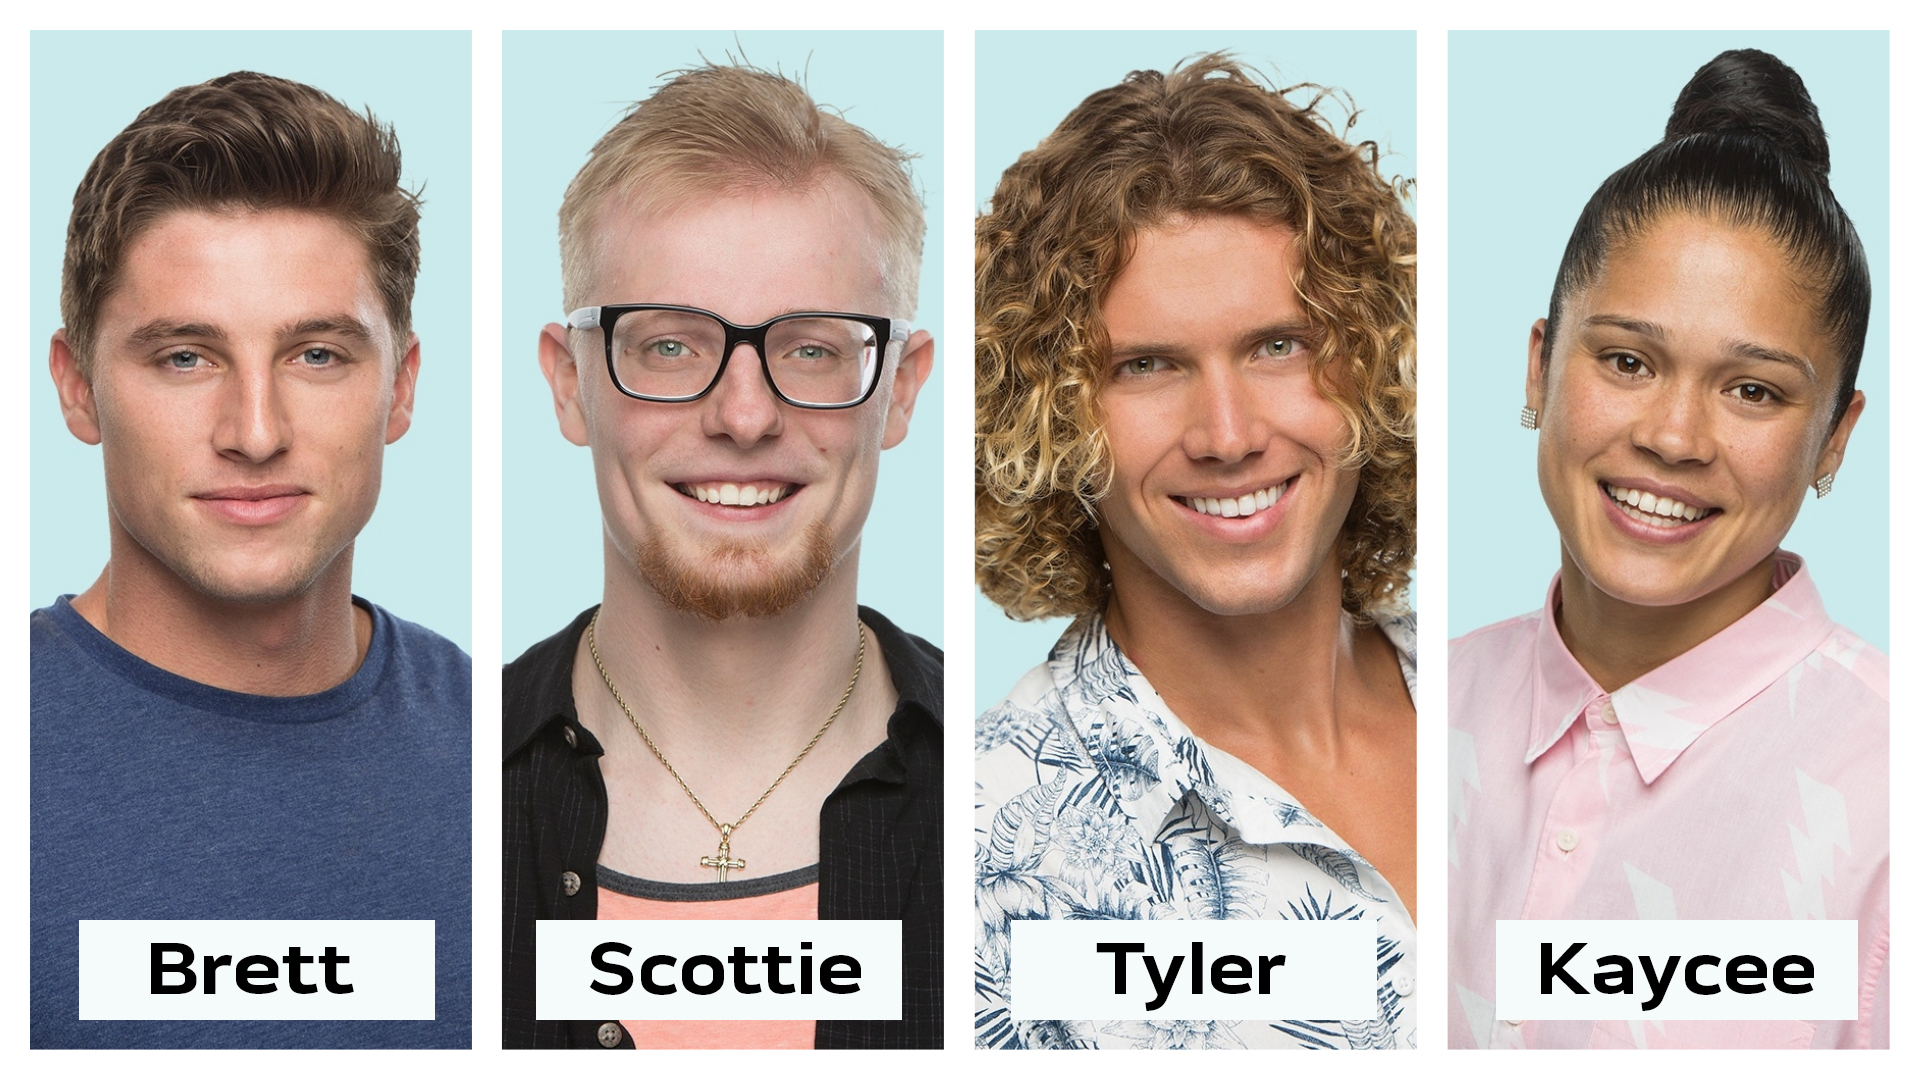 Which Houseguest won $5000 in the Space Pecs Veto competition?